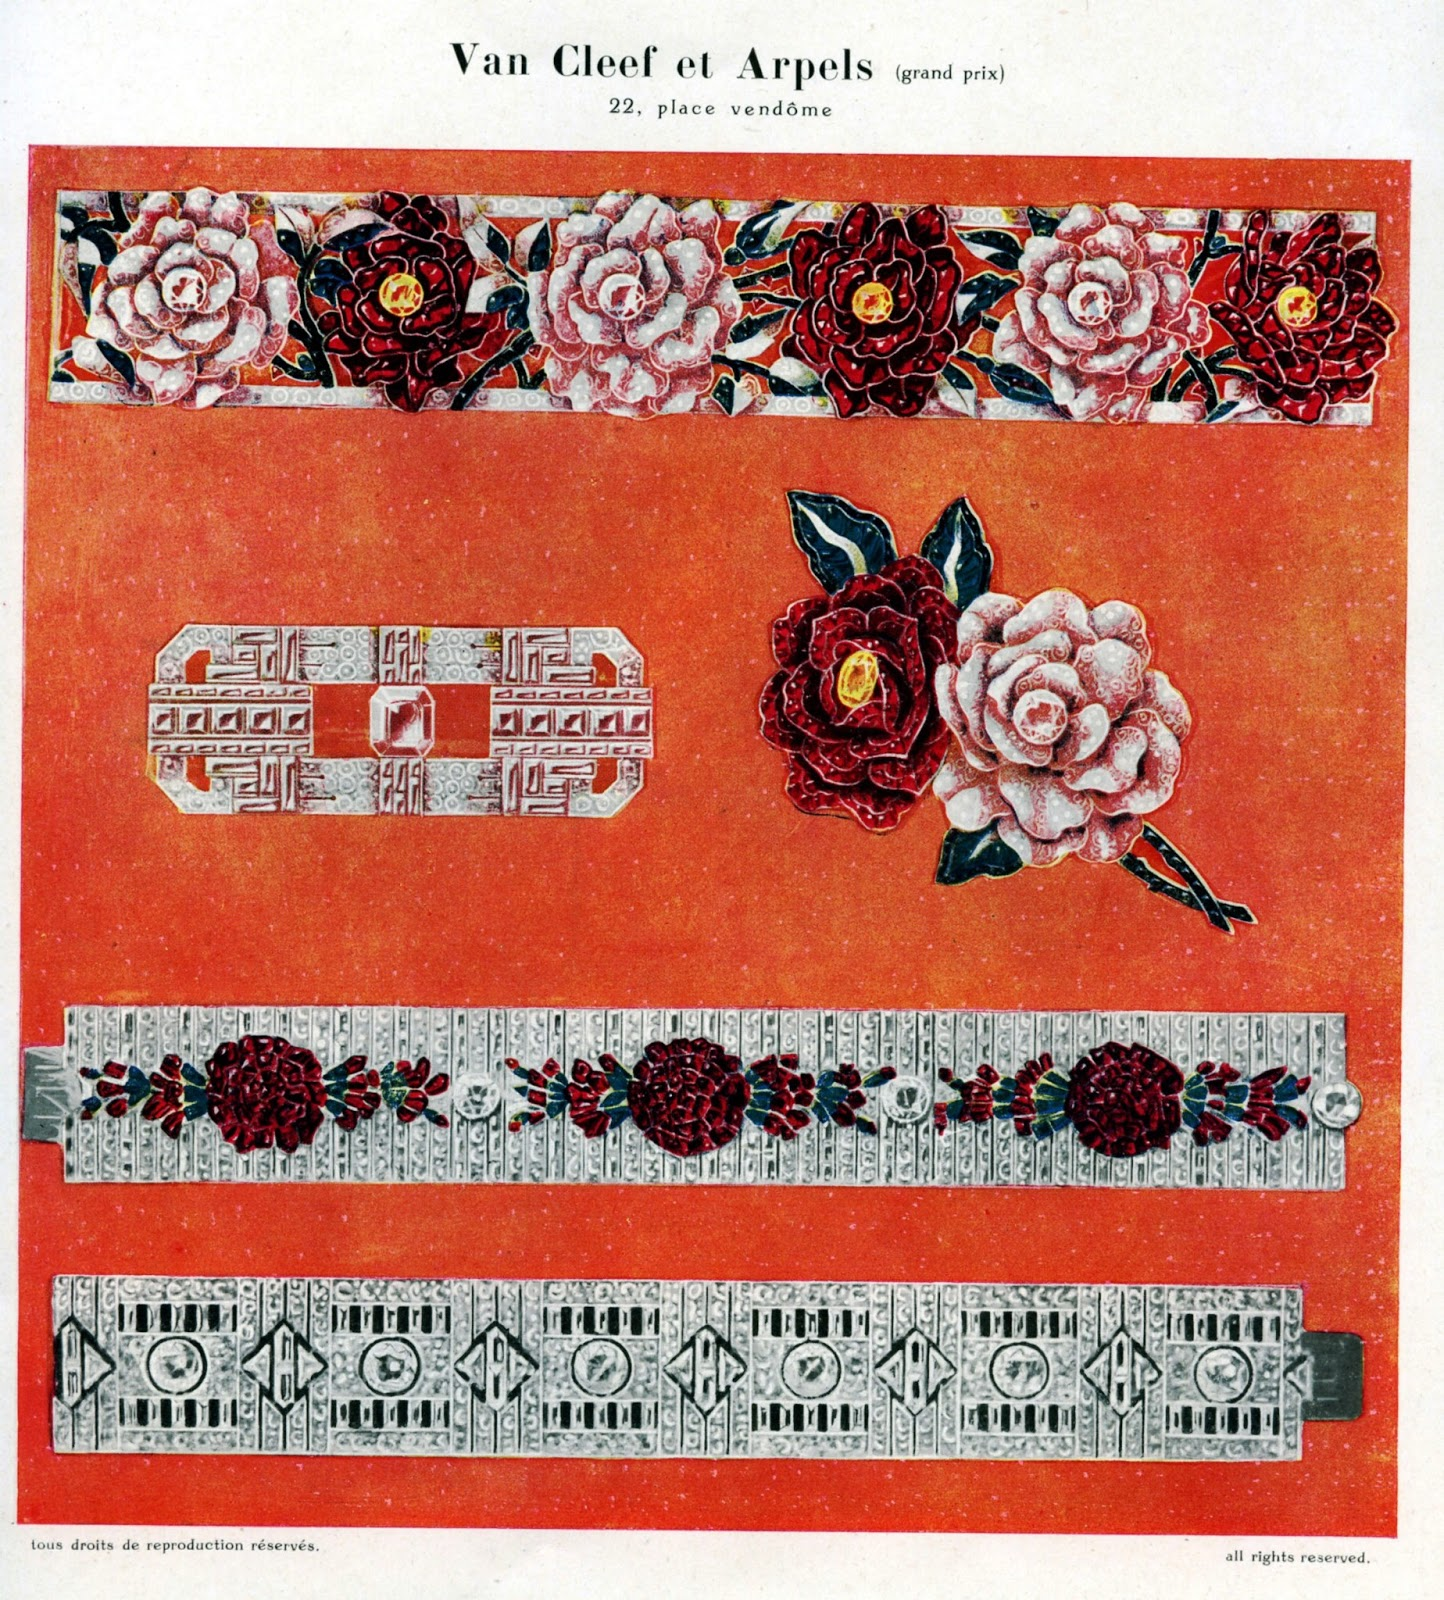 """The """"Roses"""" bracelet, which worn the grand price at the """"Exposition Internationale des Arts Décoratifs et Industriels Modernes"""" in Paris, 1925. Manufactured by Frères Rubel in 1924.   Image courtesy of vancleefarpels.com"""